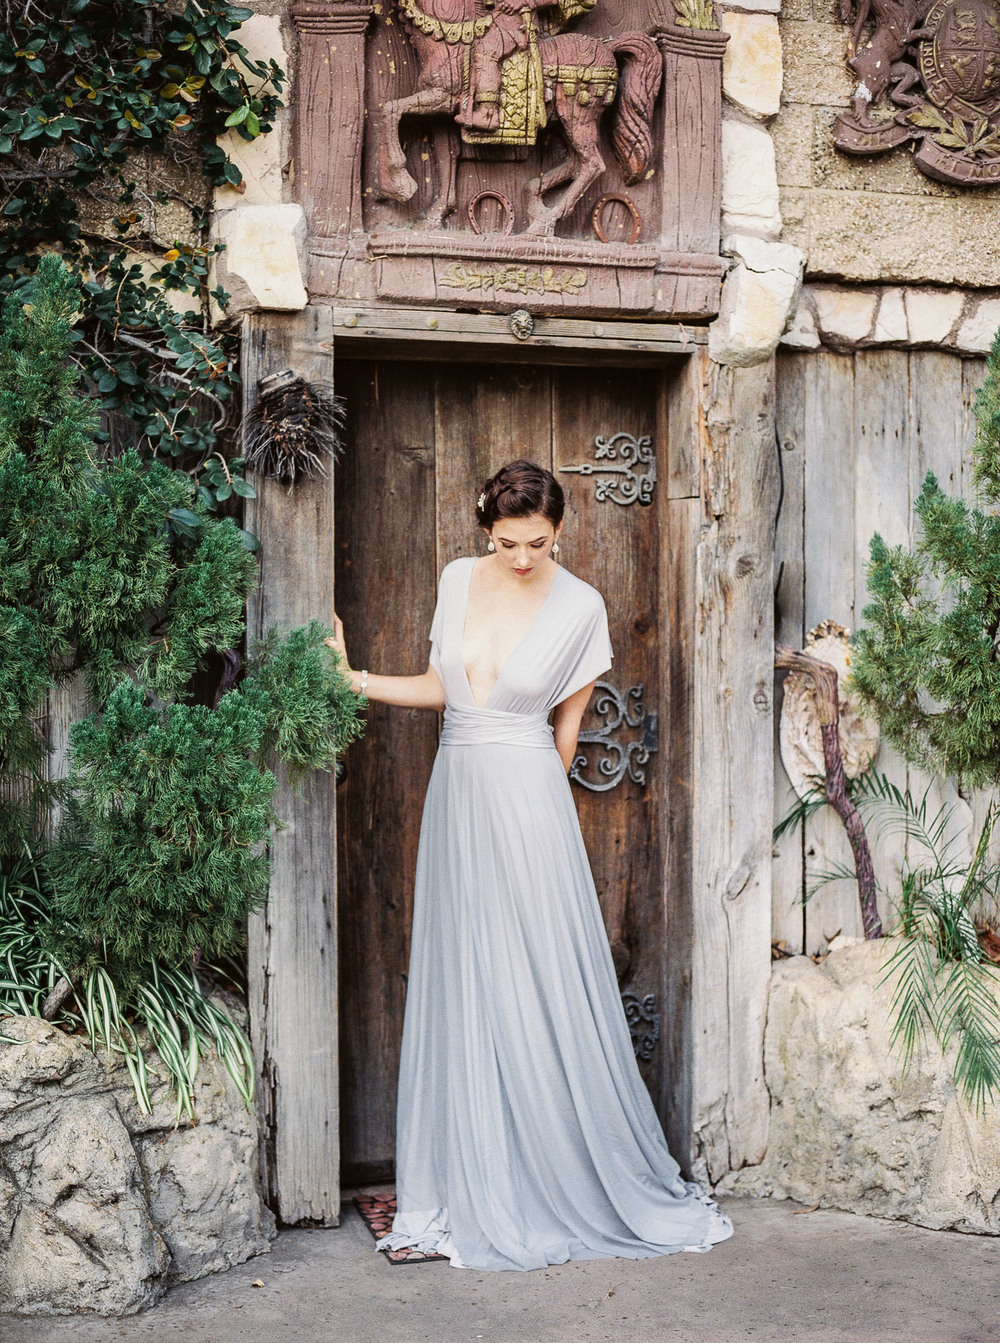 Once_Upon_A_Dream_Styled_Shoot_Hollywood_Castle-21.jpg